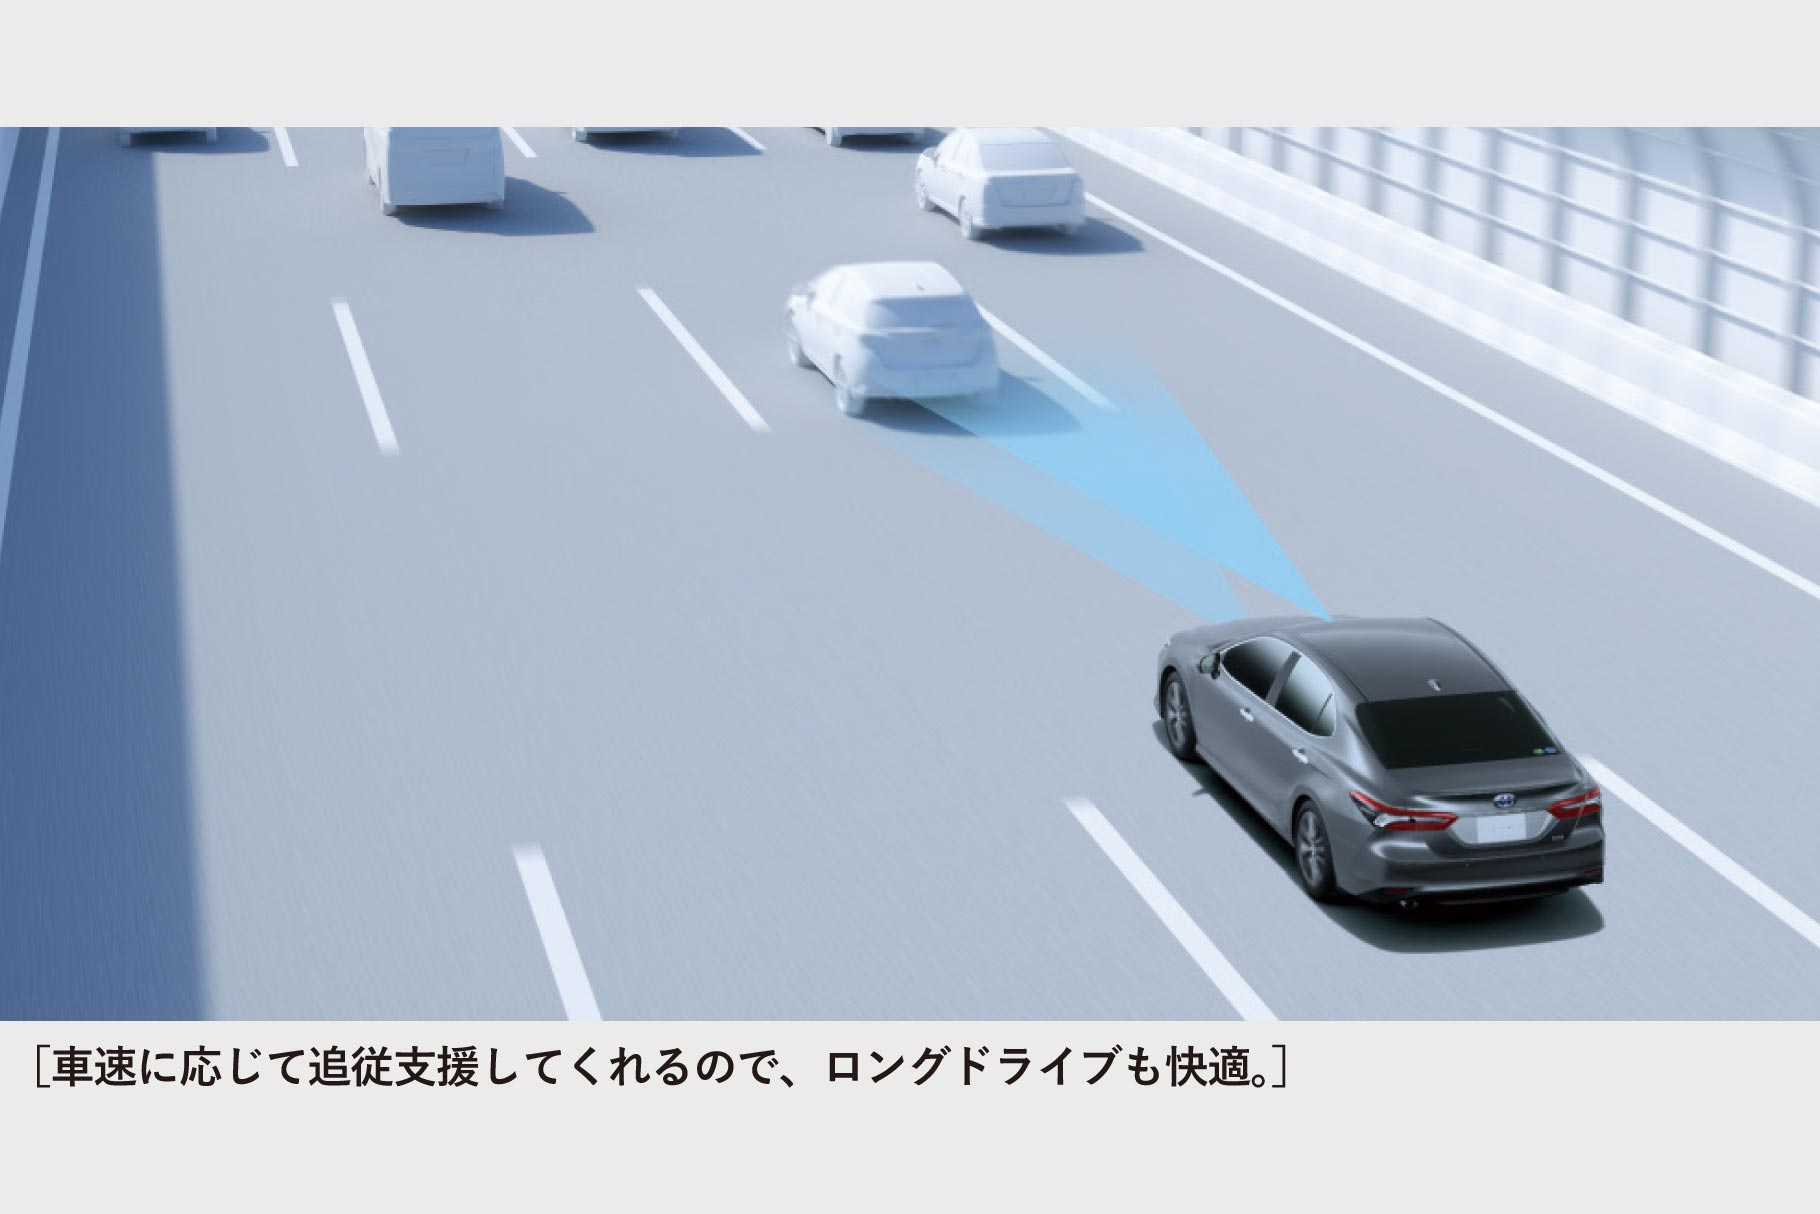 camry_safety_img07